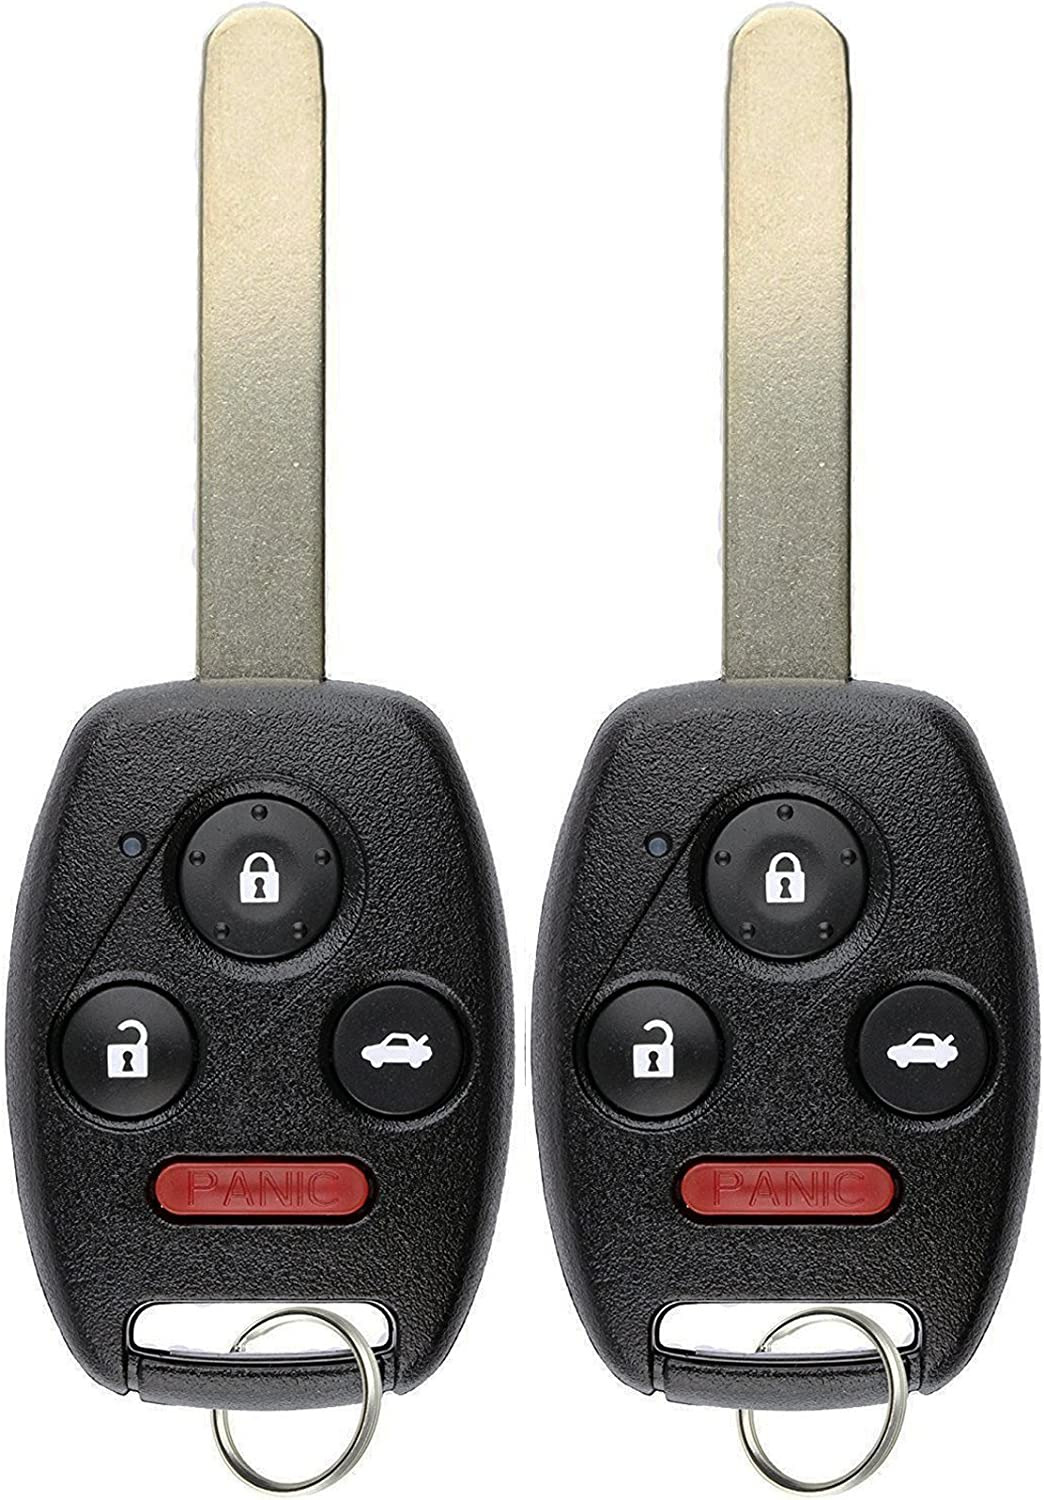 Pack of 2 KeylessOption Keyless Entry Remote Control Uncut Car Ignition Chipped Key Fob Replacement for Honda Civic N5F-S0084A